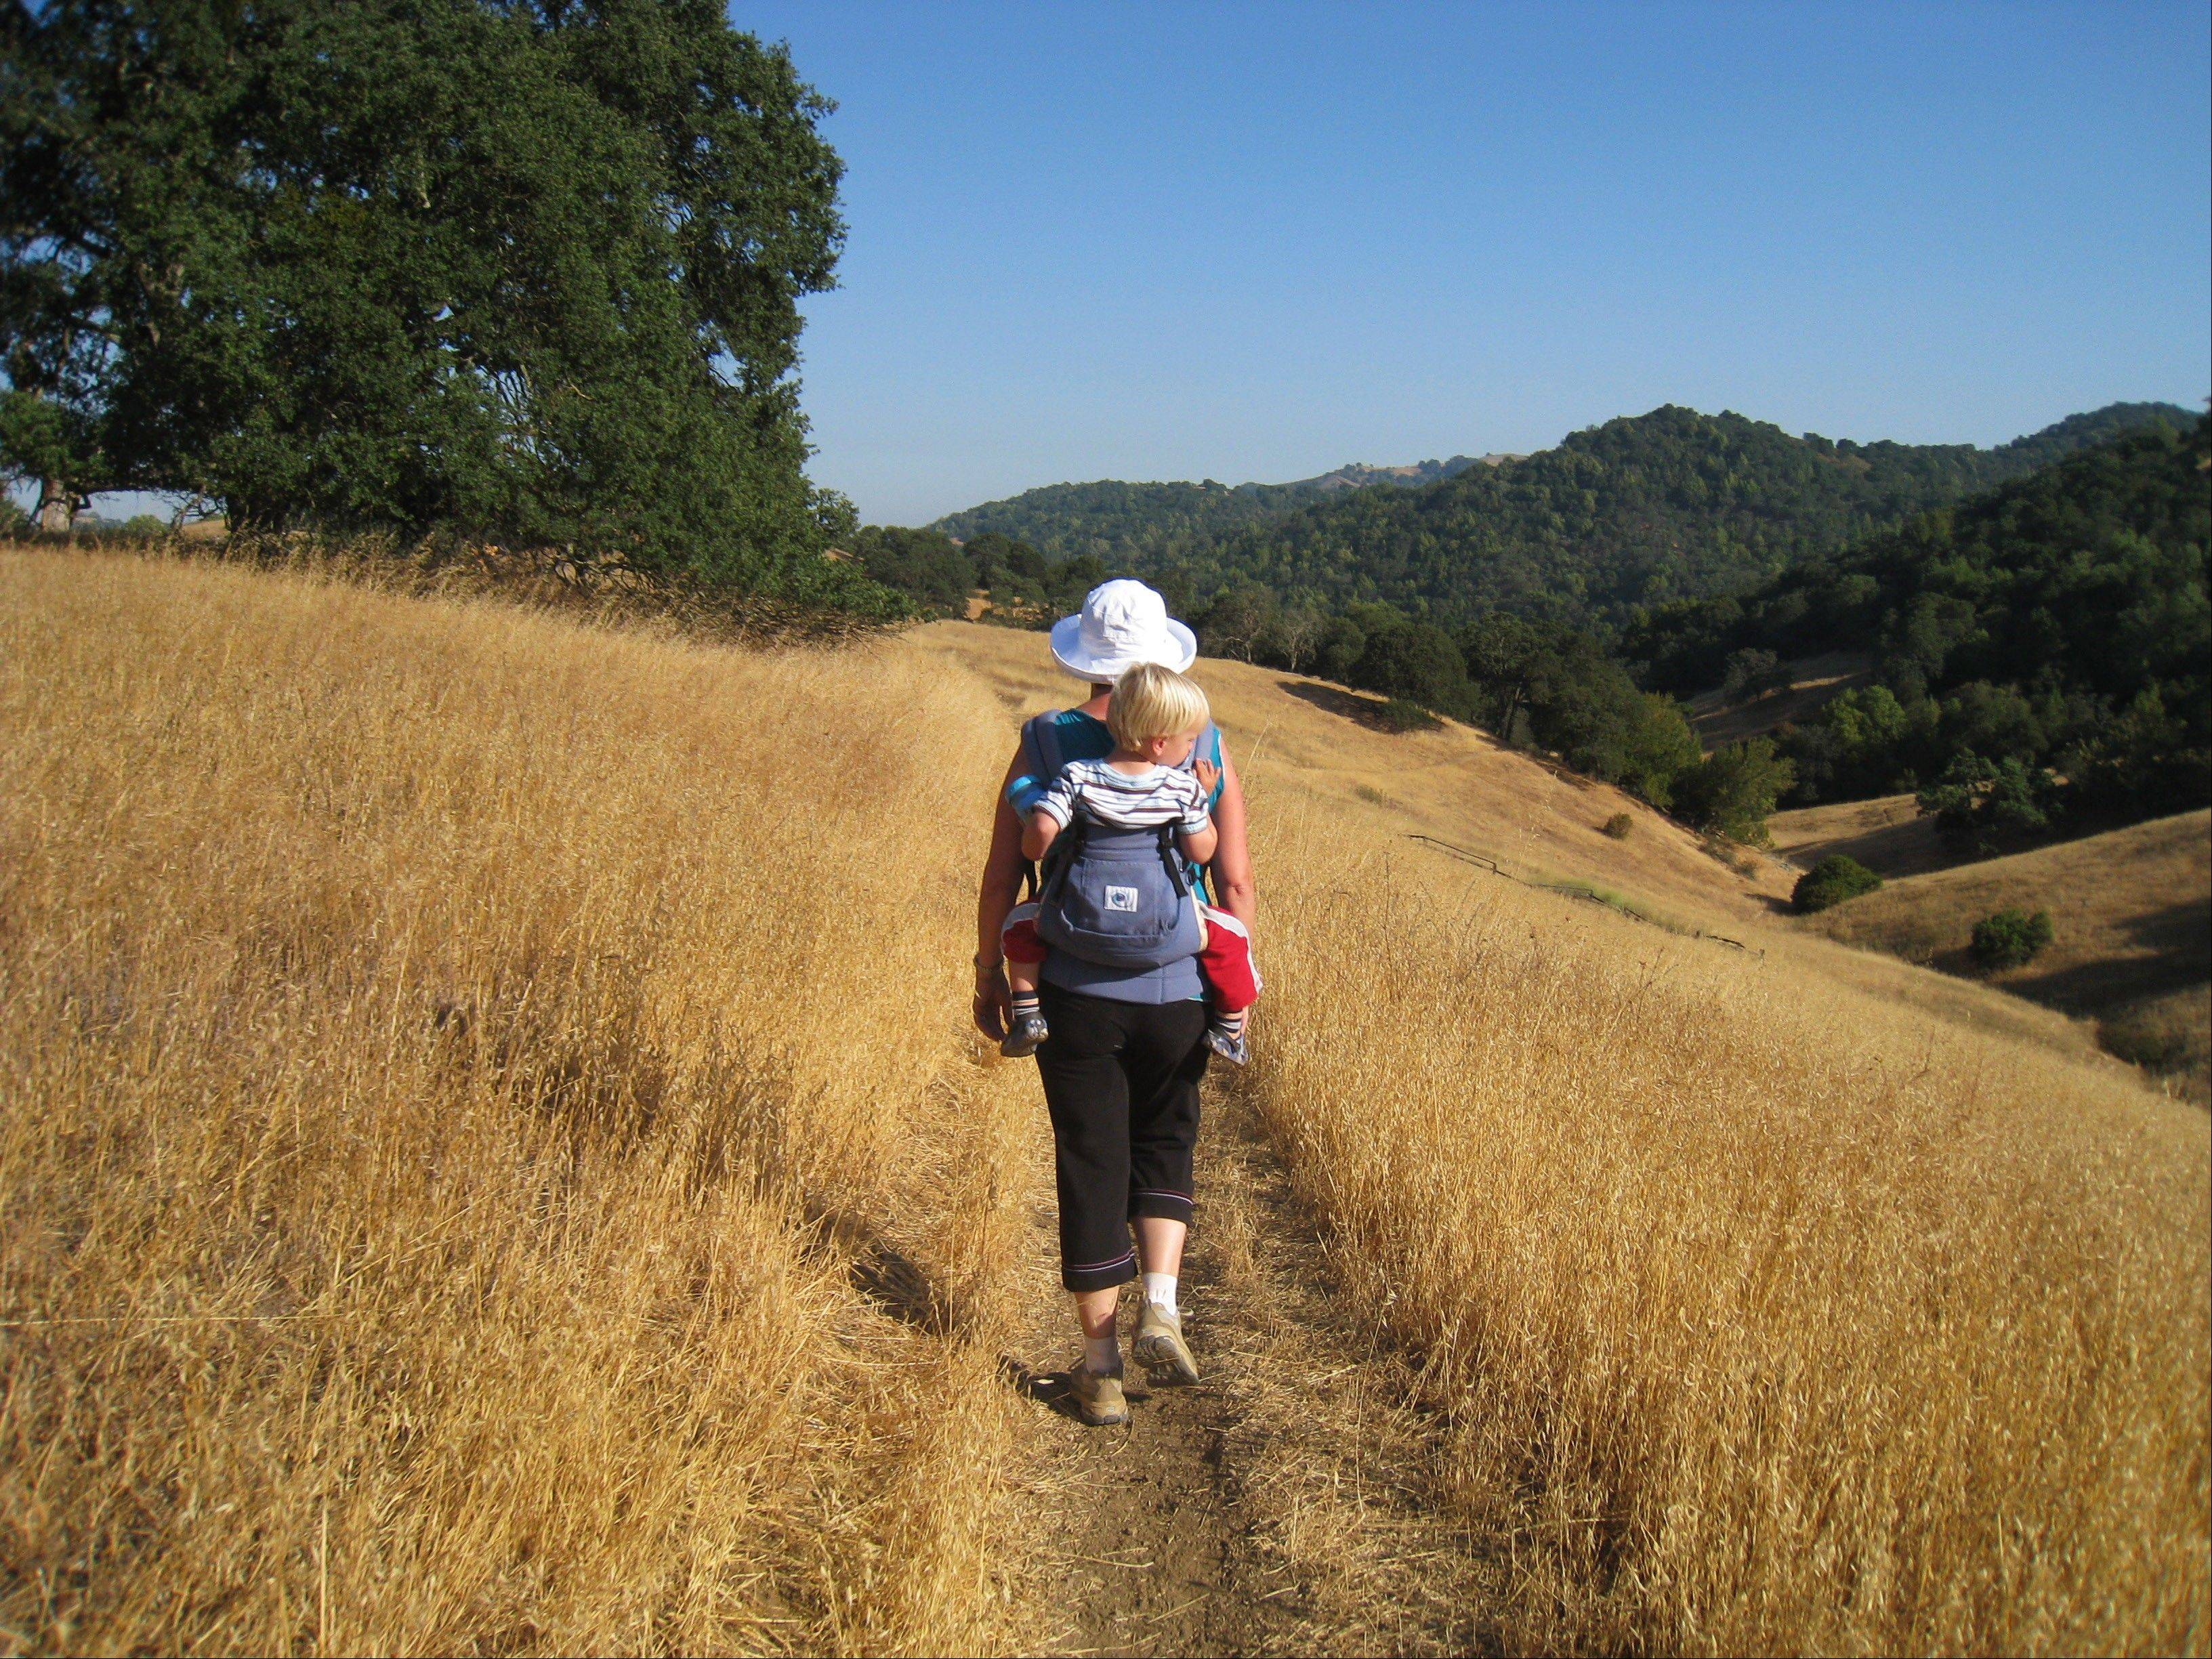 Baby Maxwell enjoys the views from a backpack carrier along the Pena Trail in Calero County Park with his mother on a rugged Stroller Hike in San Jose, Calif.